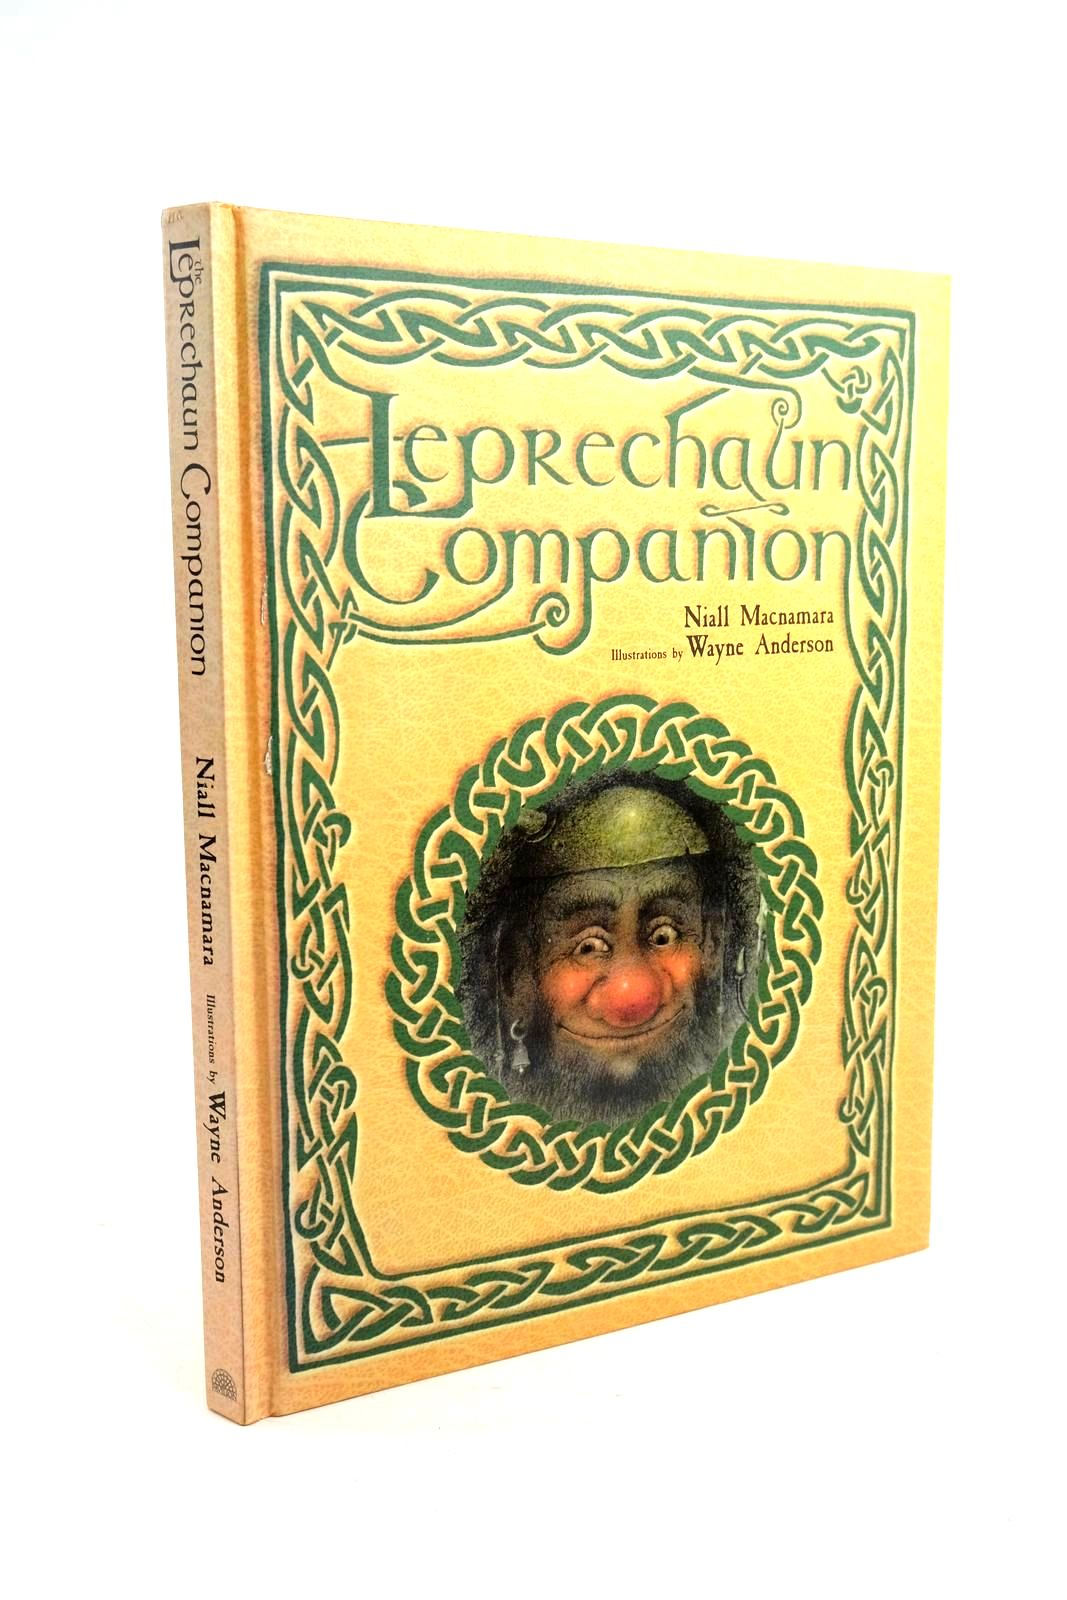 Photo of THE LEPRECHAUN COMPANION written by Macnamara, Niall illustrated by Anderson, Wayne published by Pavilion Books Limited (STOCK CODE: 1320337)  for sale by Stella & Rose's Books